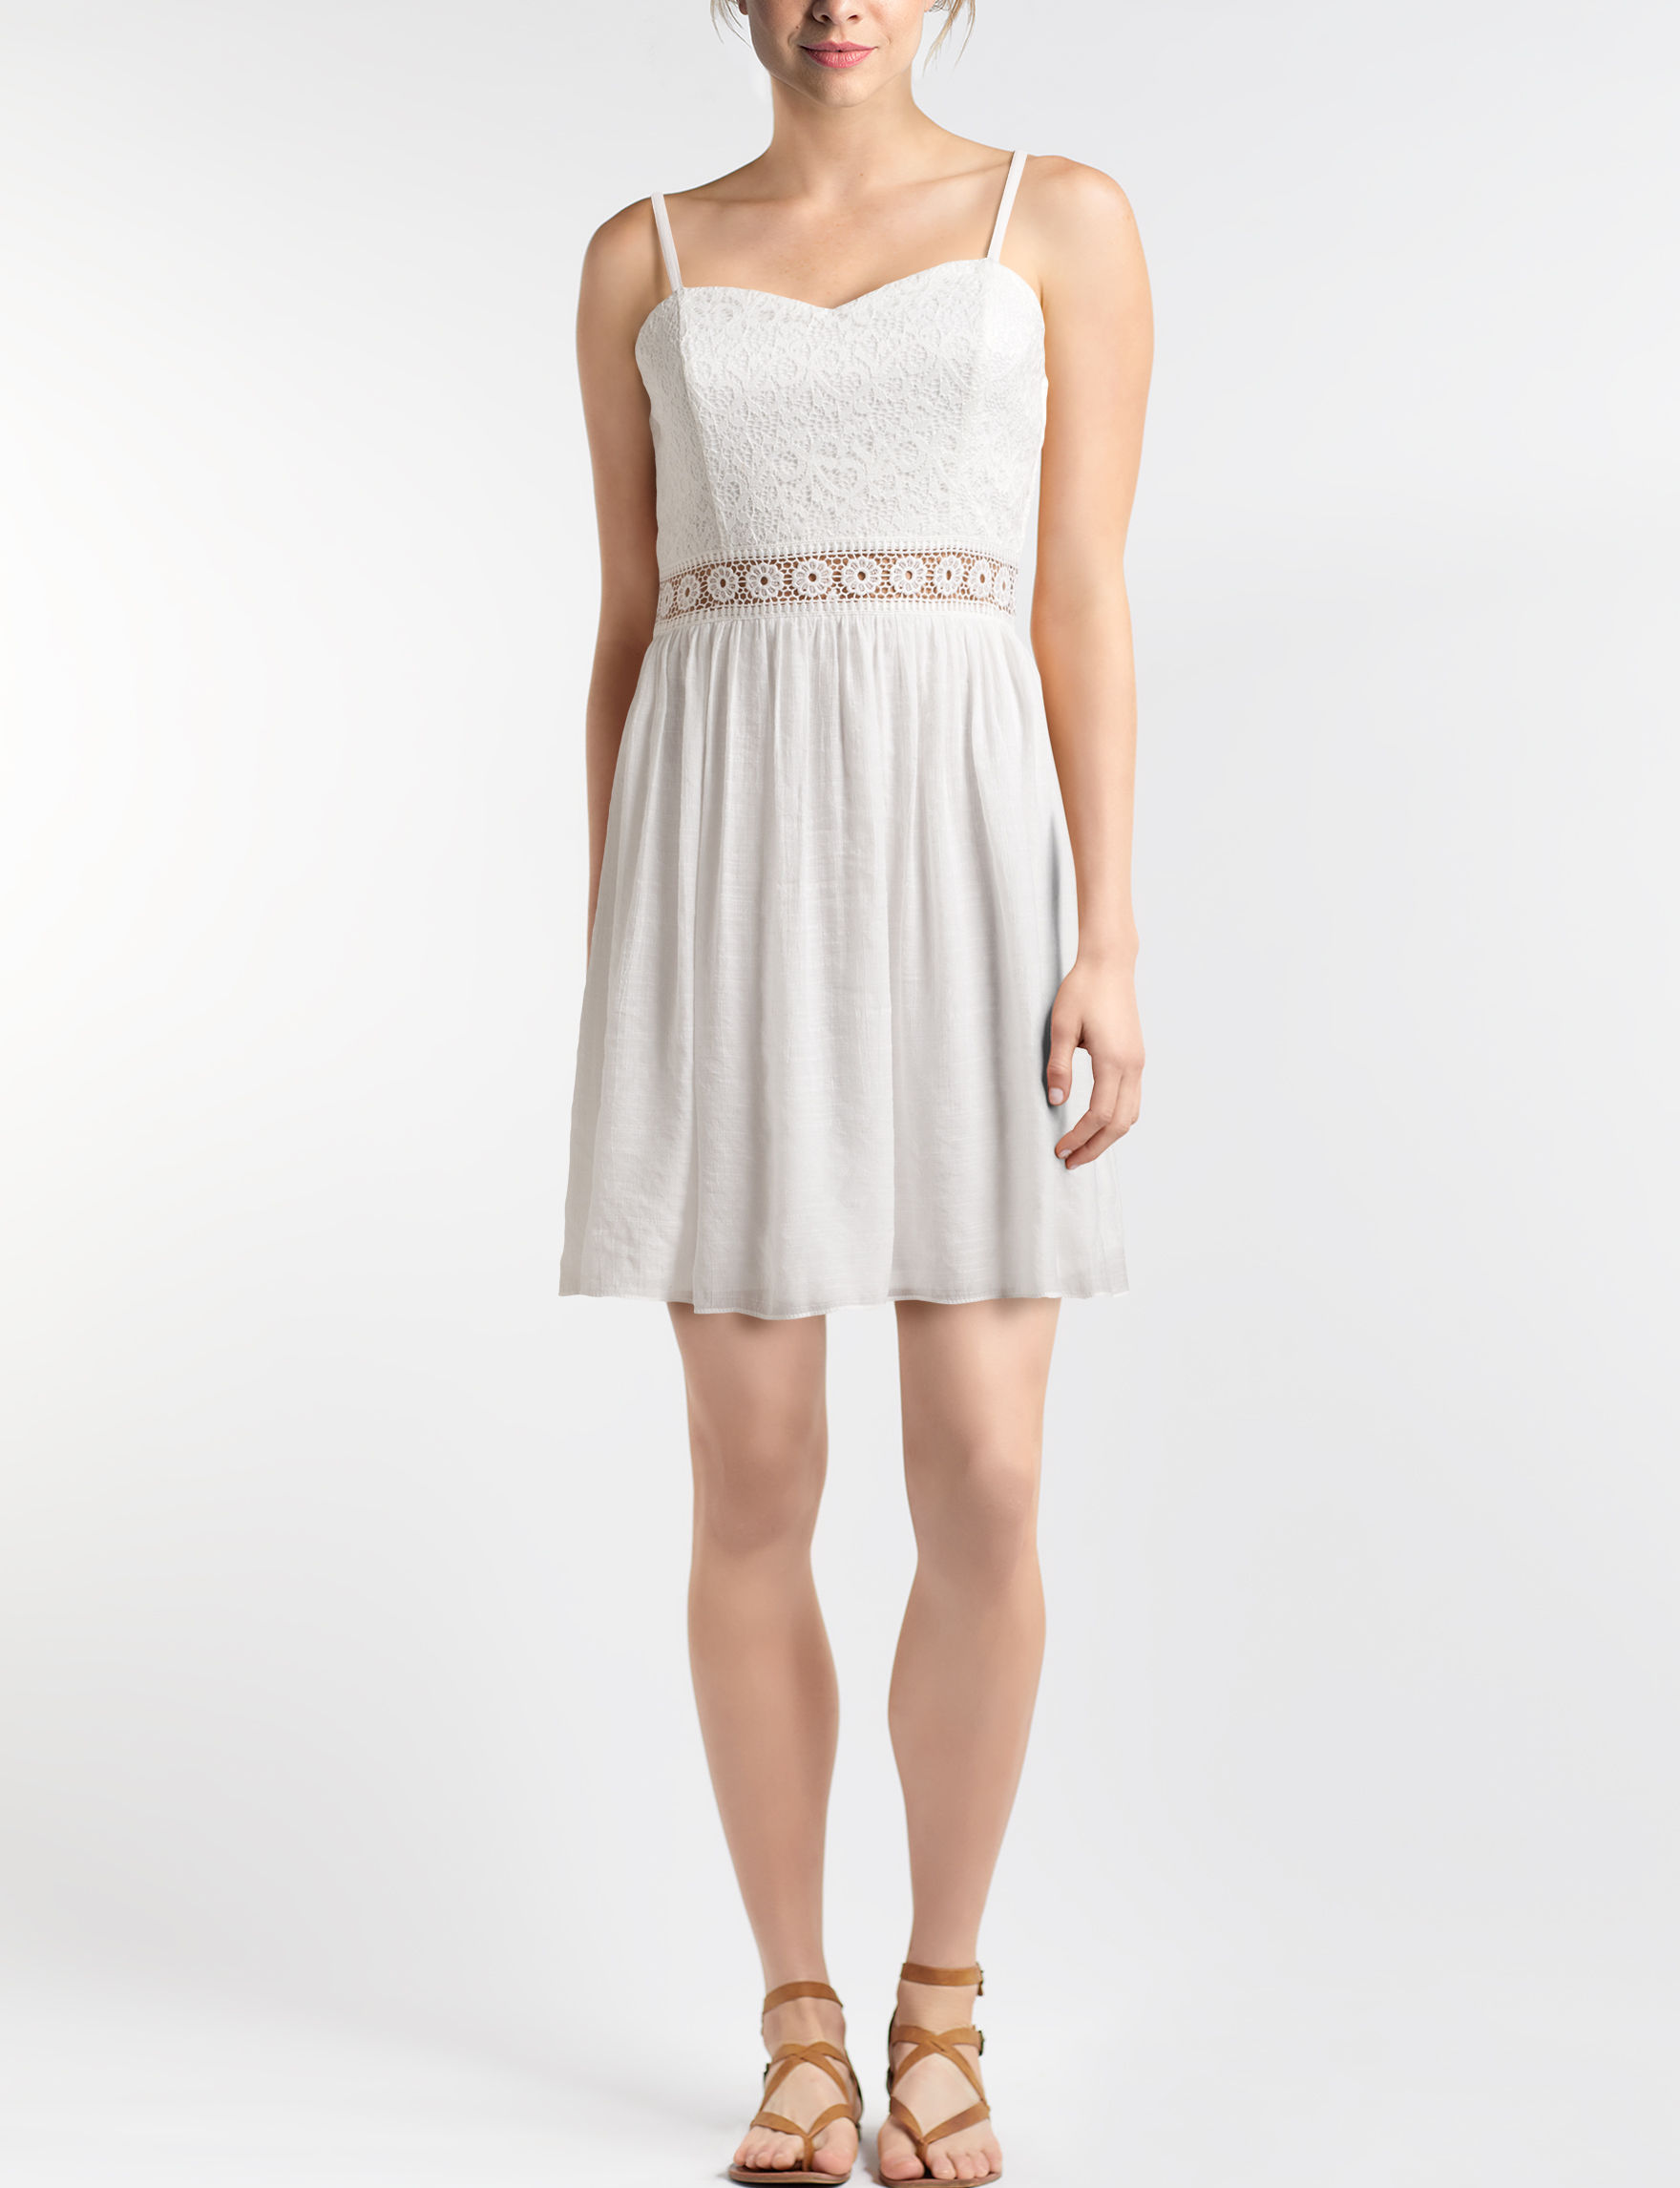 A. Byer White Everyday & Casual Sundresses